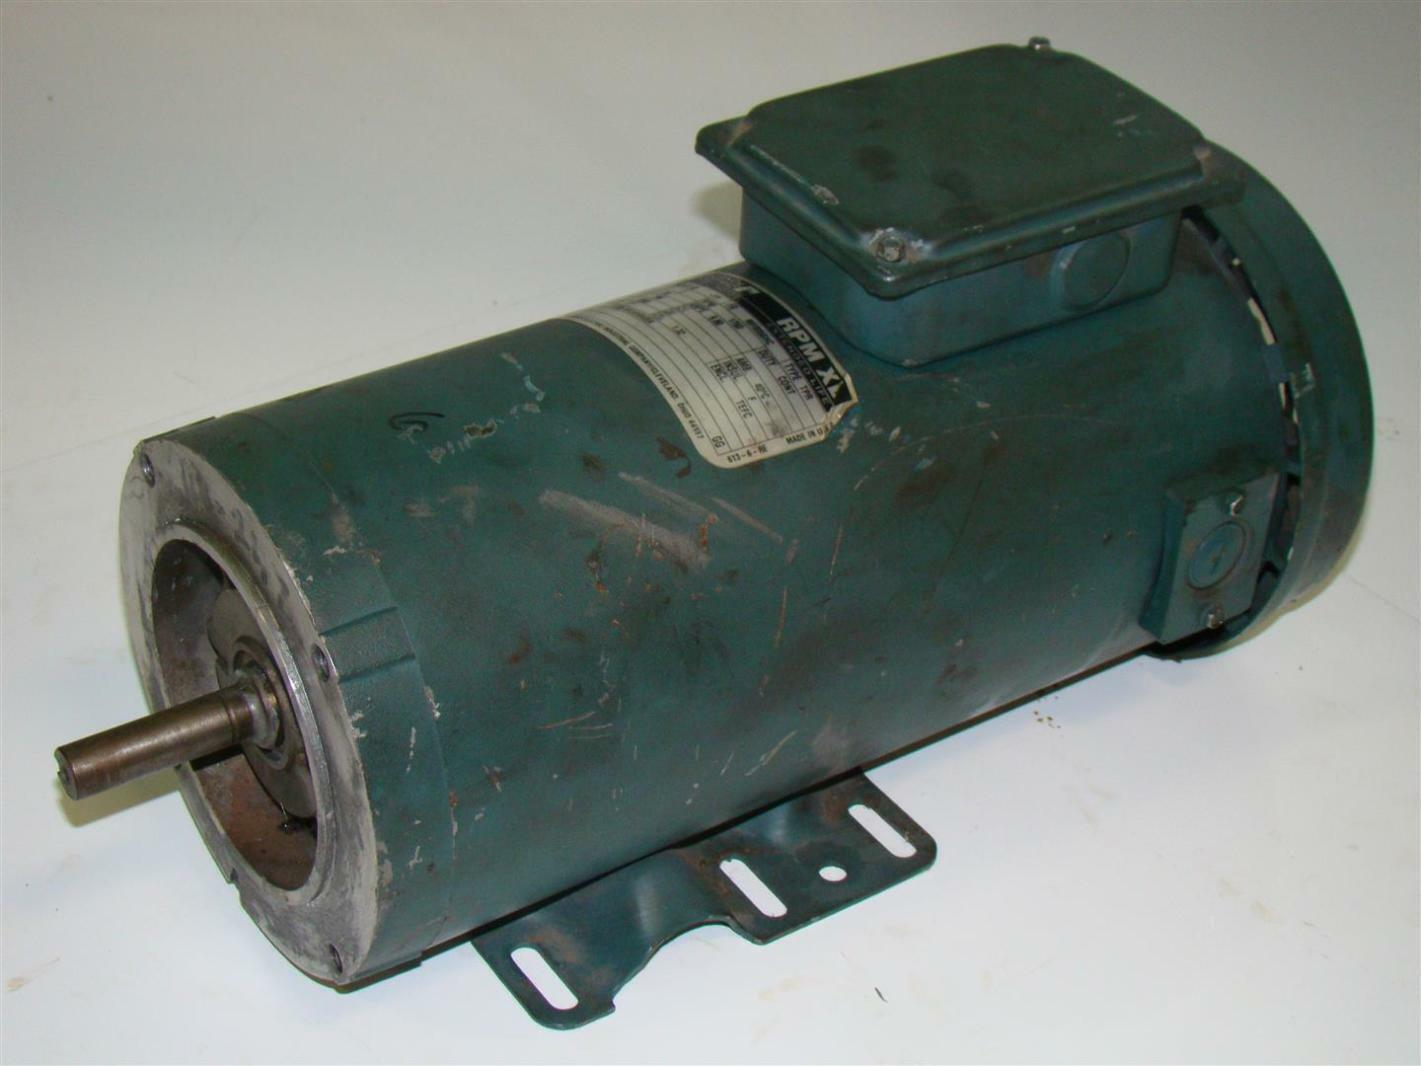 Reliance electric small dc motor 1hp 1750rpm t56s1011b ebay for Reliance electric motor parts